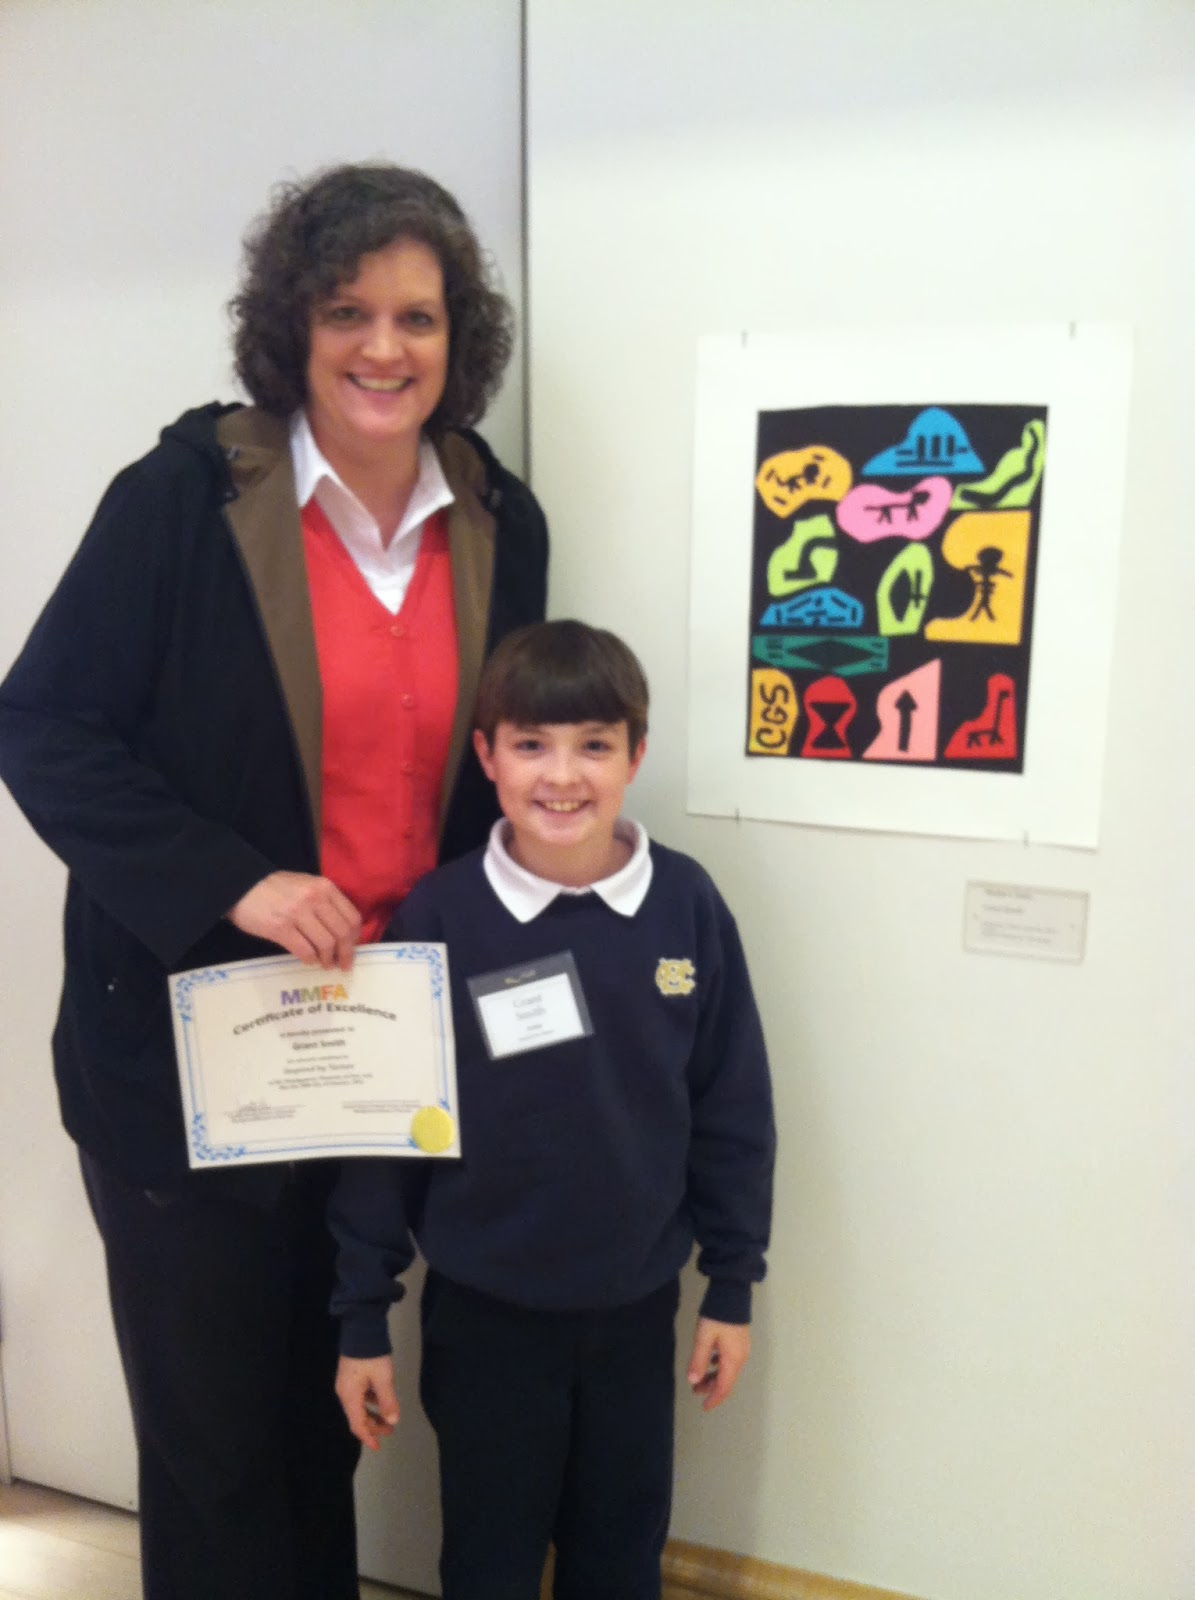 MONTGOMERY CATHOLIC STUDENTS SHOW ART AND PERFORM AT THE MONTGOMERY MUSEUM OF FINE ARTS. 2